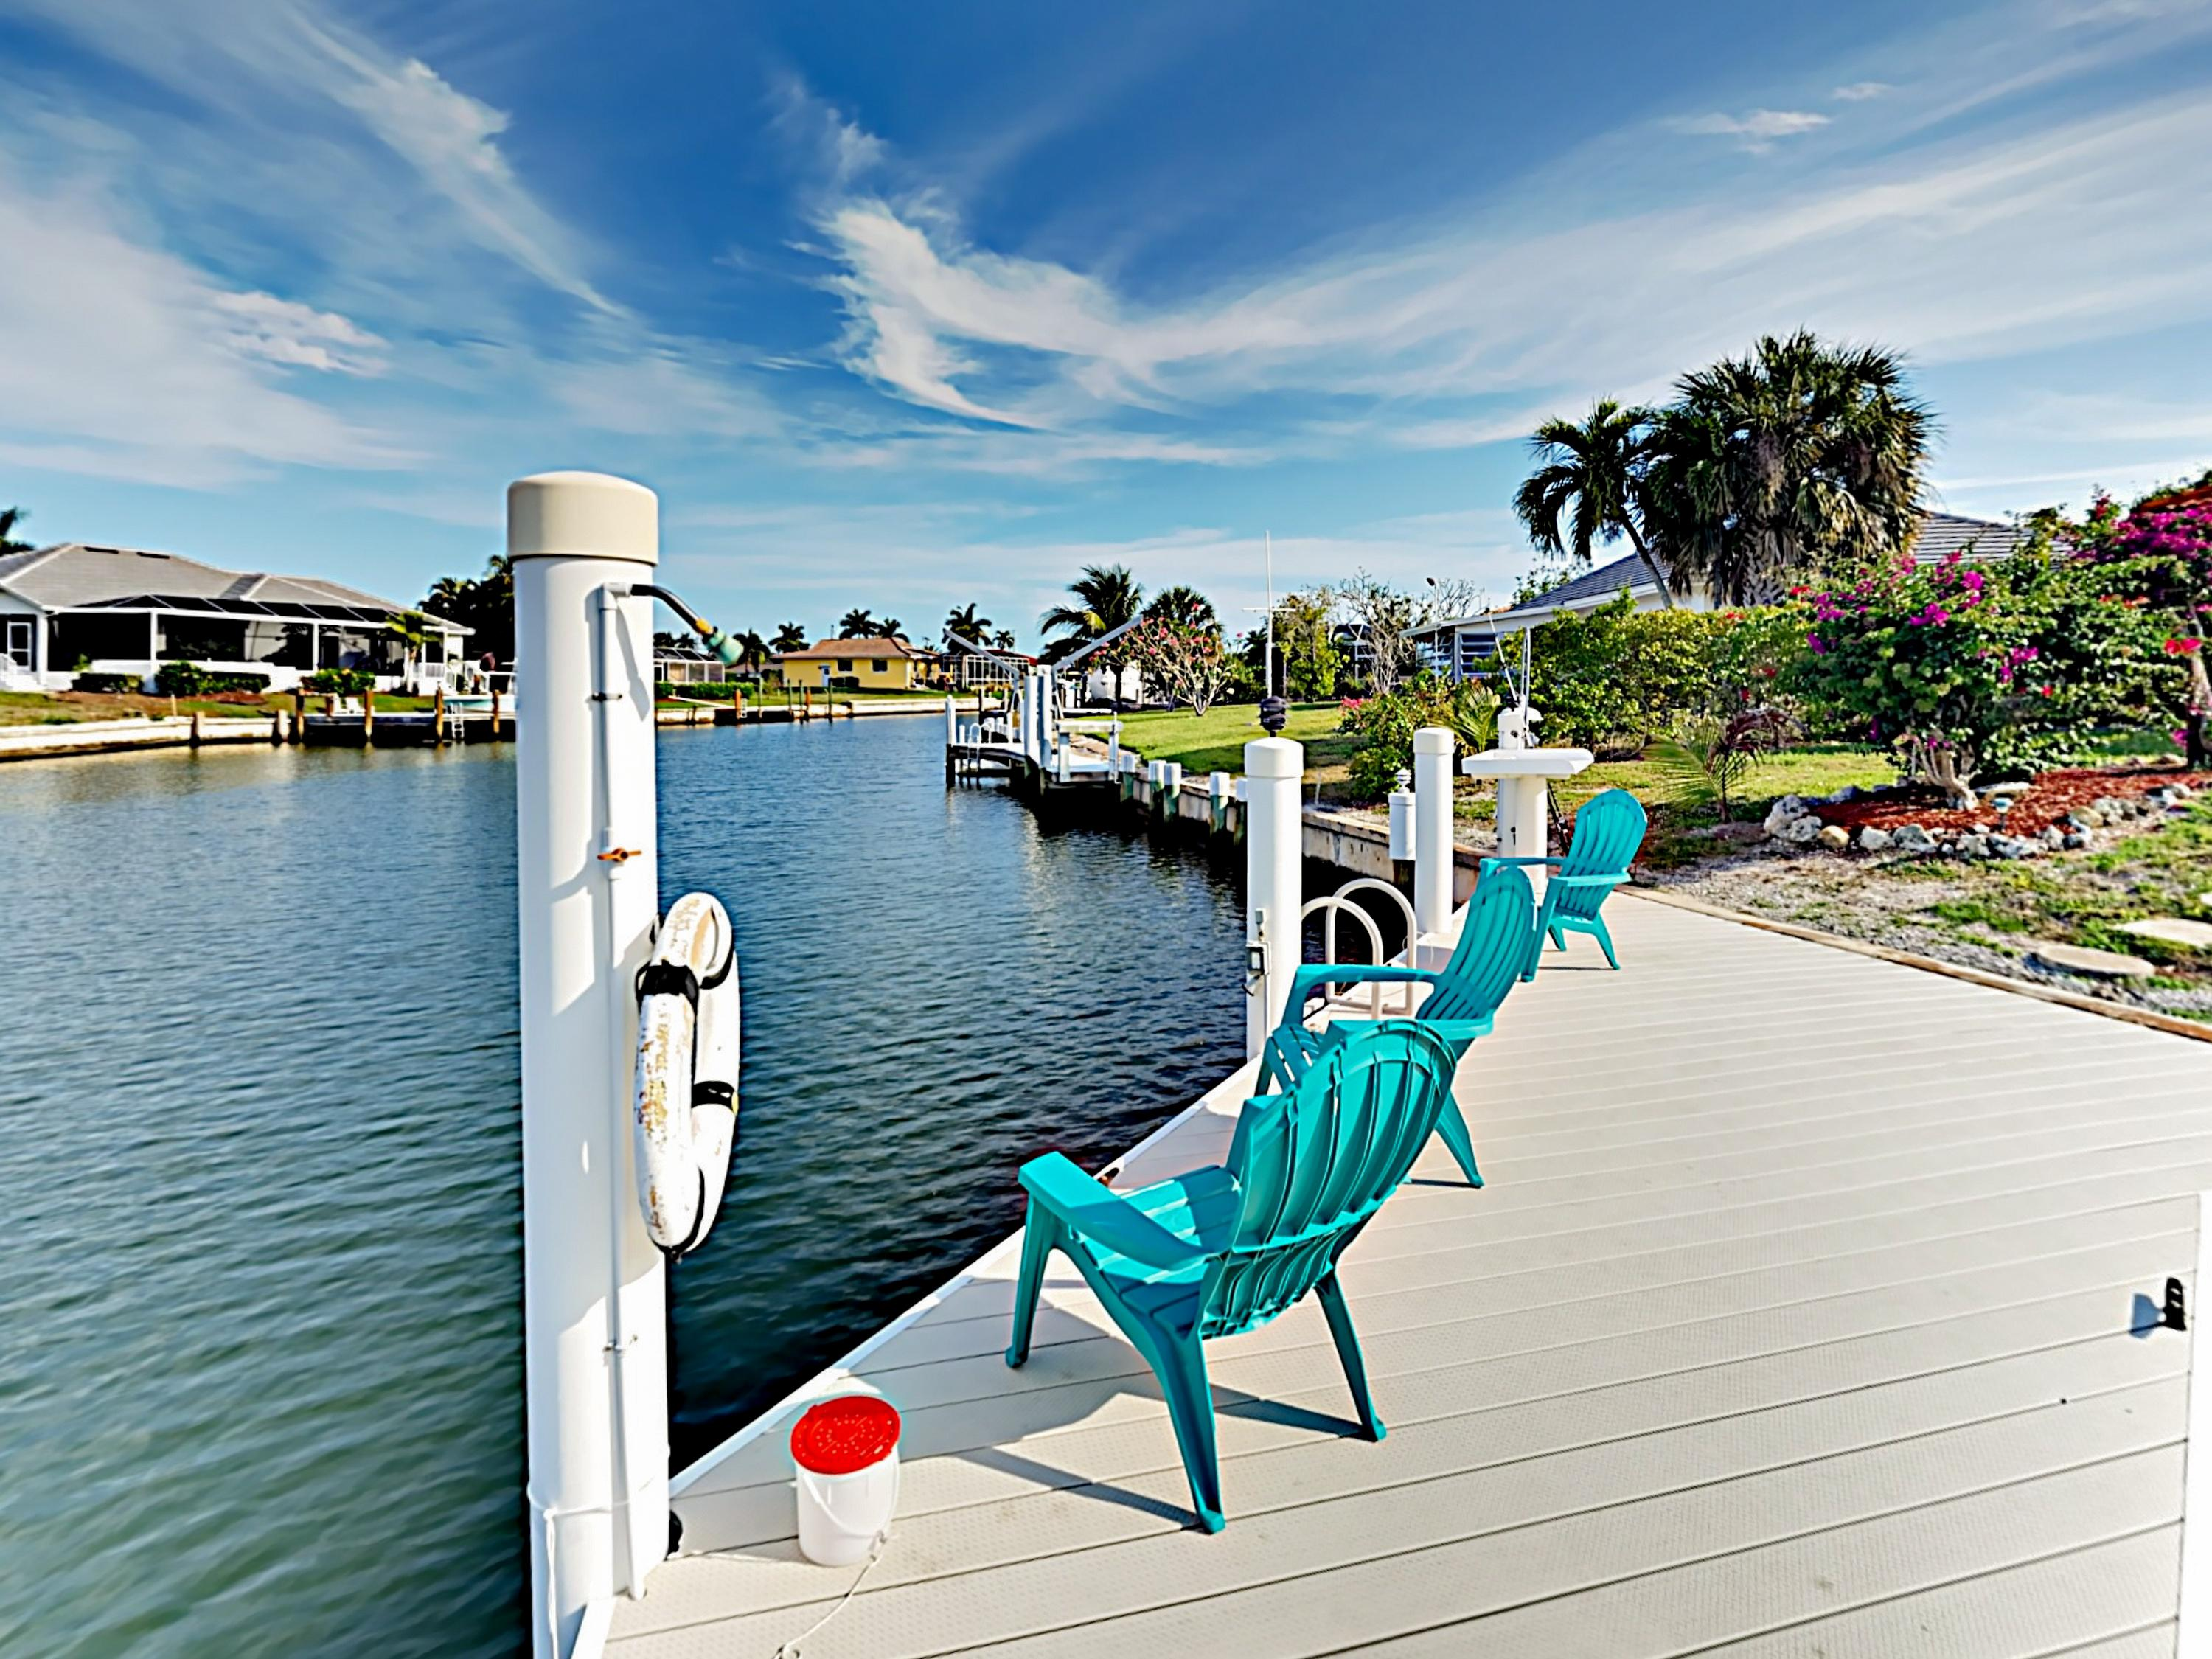 Welcome to Marco Island! Your waterfront rental is professionally managed by TurnKey Vacation Rentals.